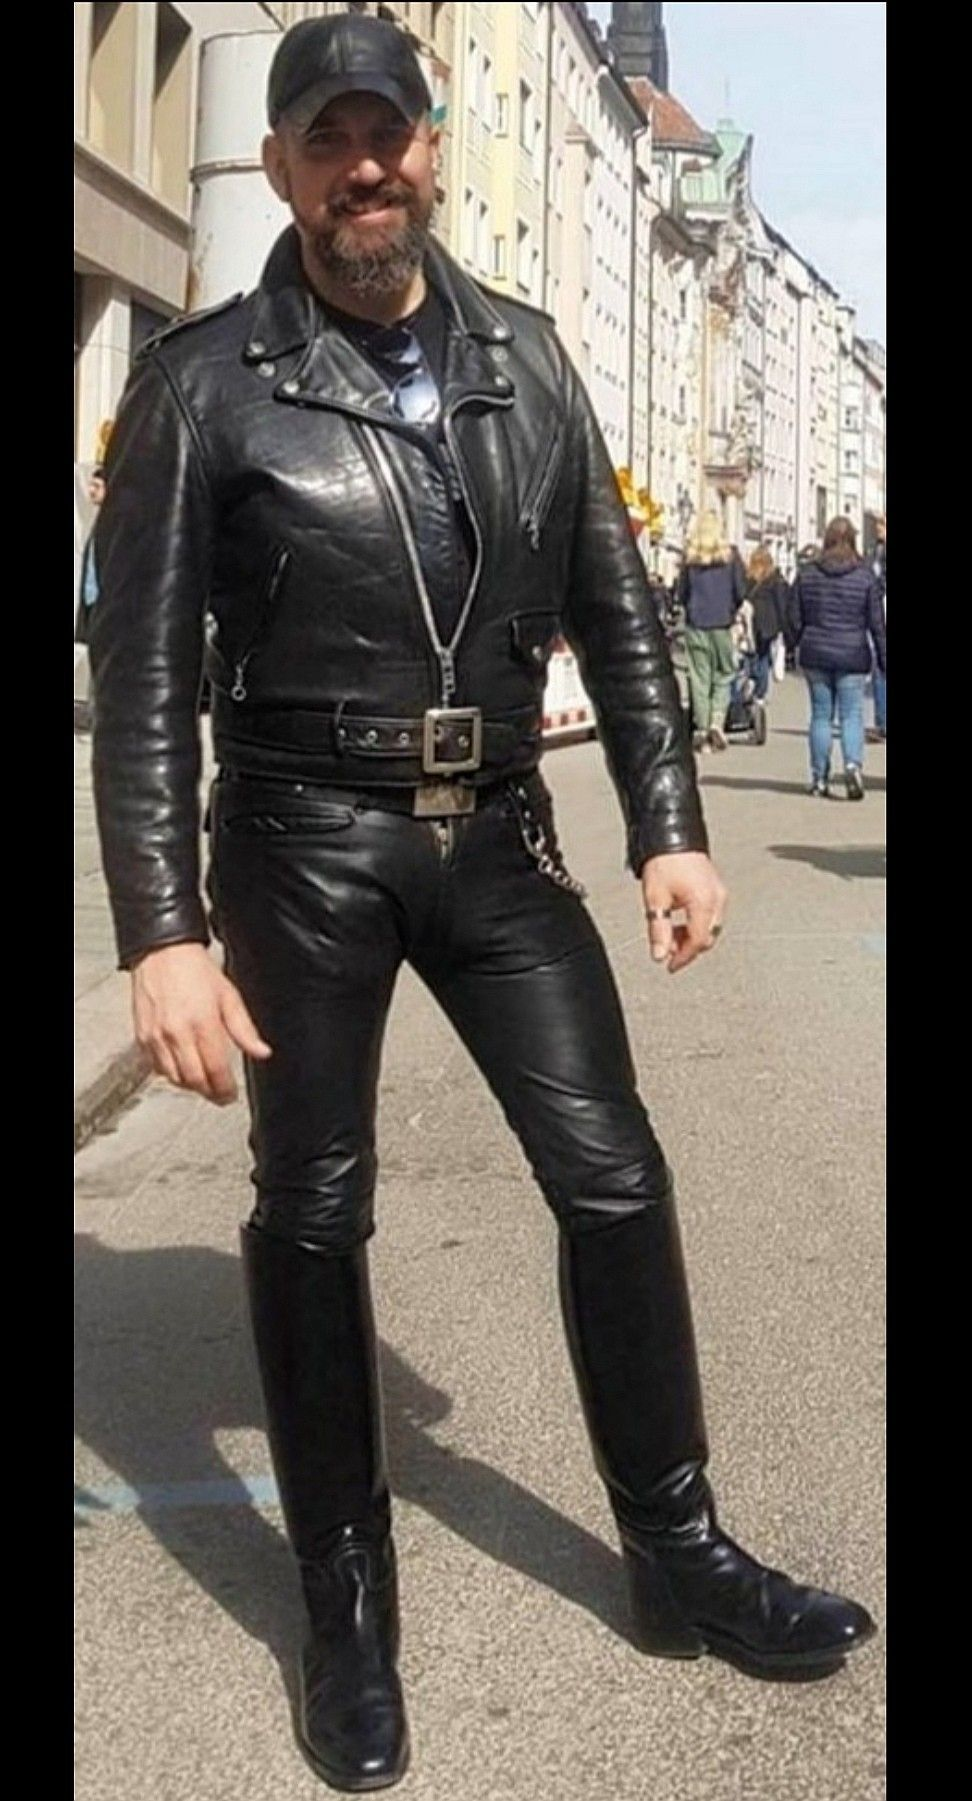 Pin By Marcus Morisson On Men In Uniform Tight Leather Pants Mens Leather Clothing Leather Motorcycle Jacket [ 1801 x 972 Pixel ]